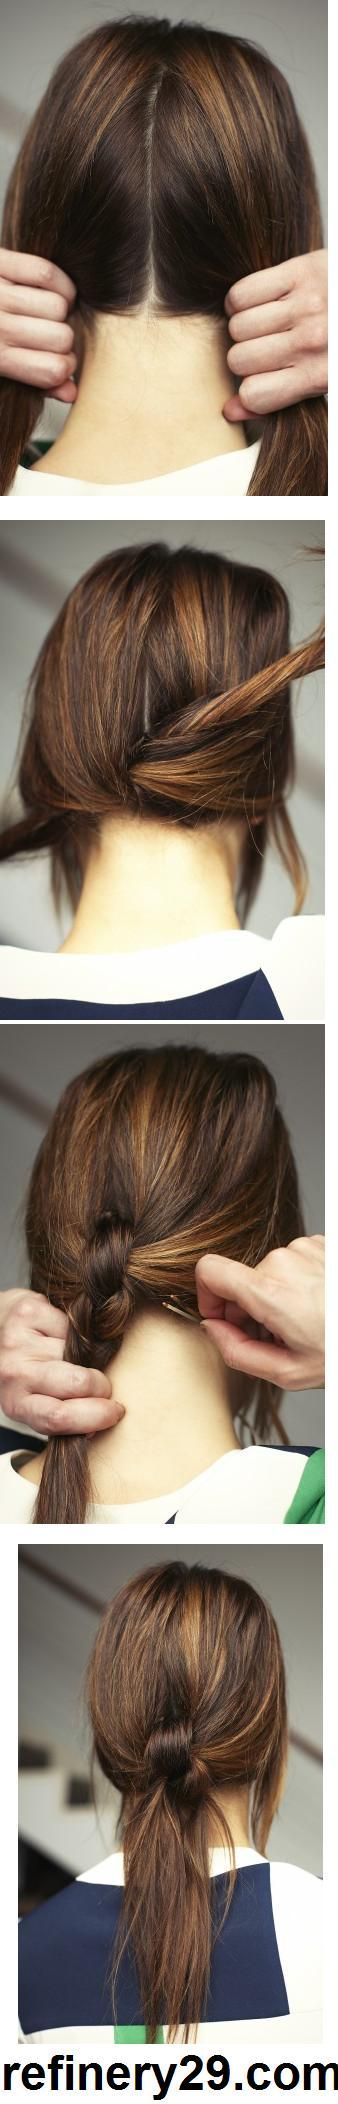 Super Cute Knotted Ponytail!